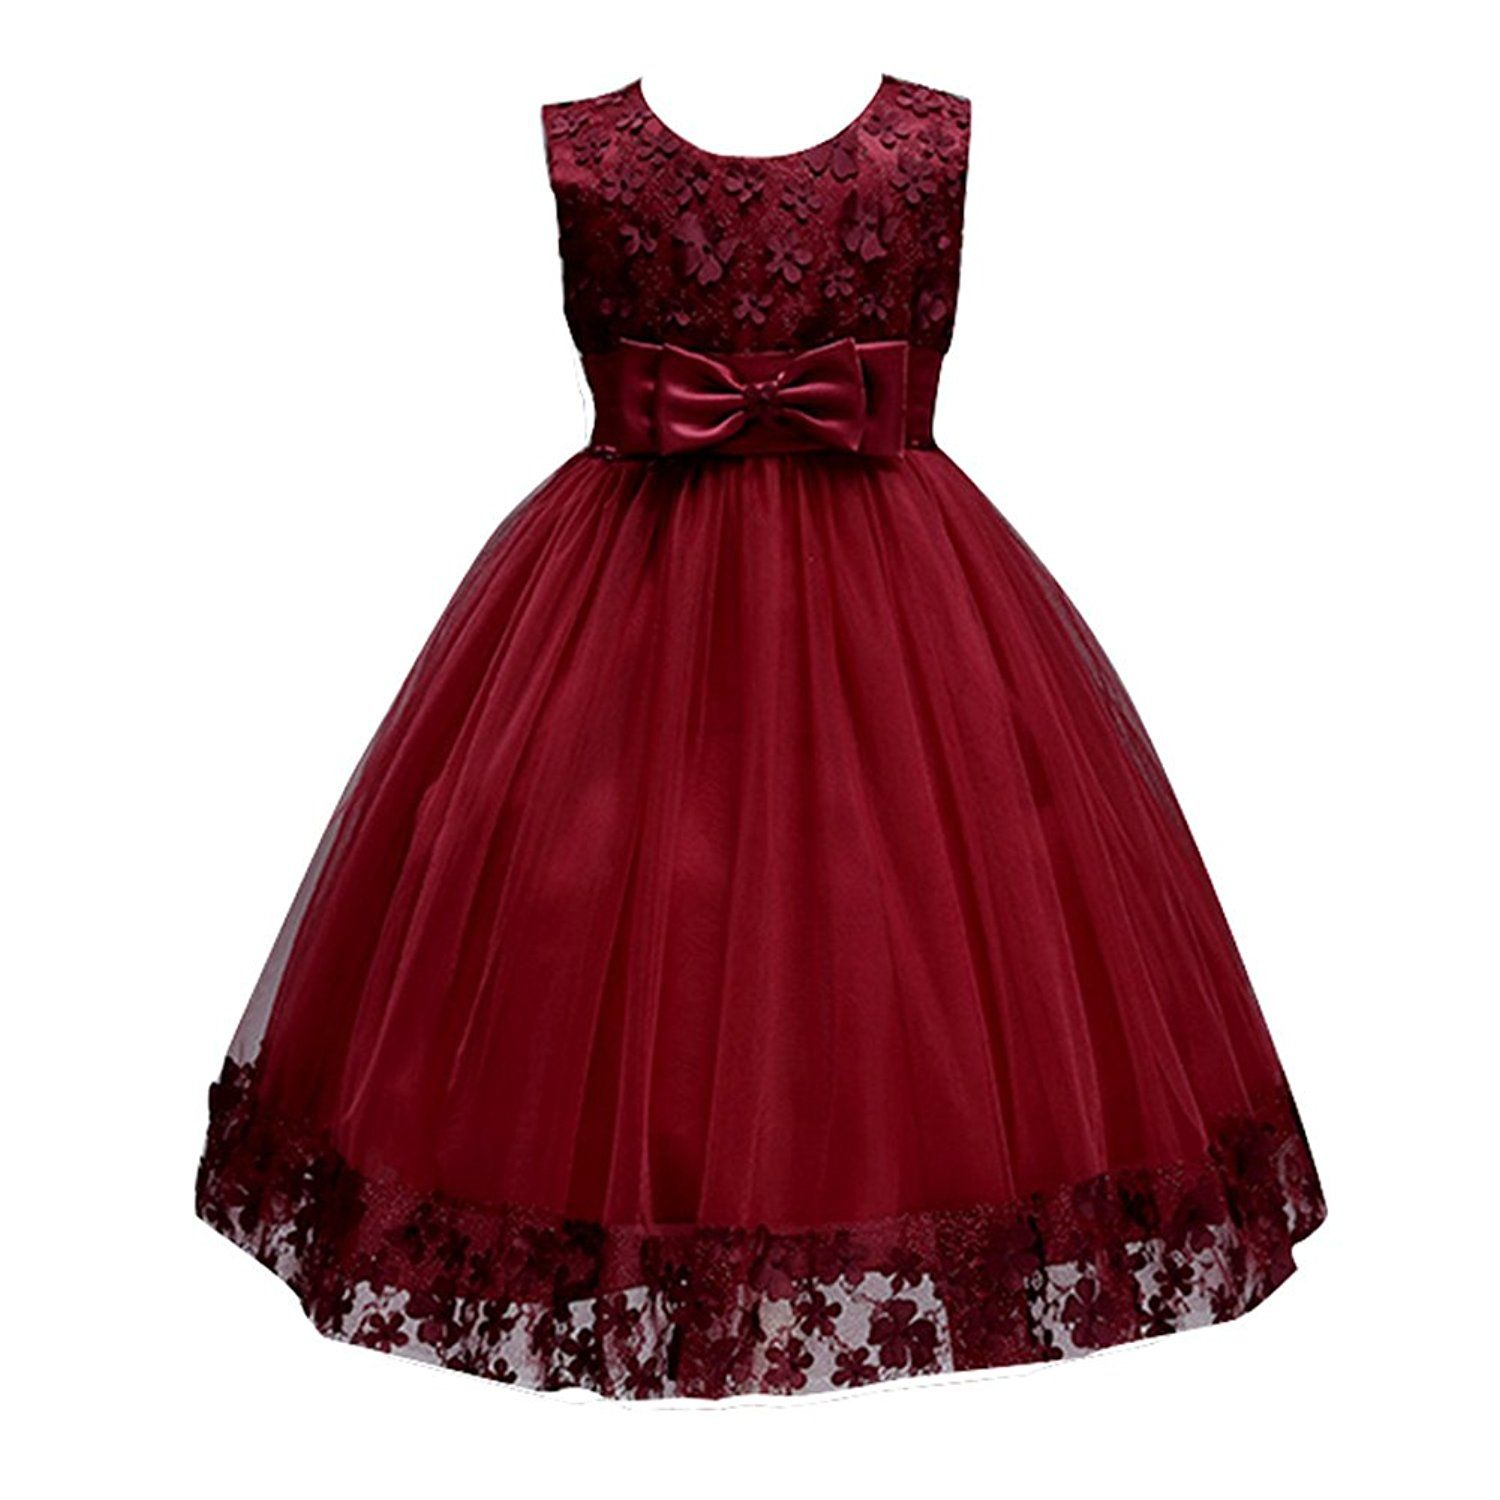 Wedding Website Url Ideas: KISSOURBABY 1-10T Girls Elegant Ball Gown Lace Dress For